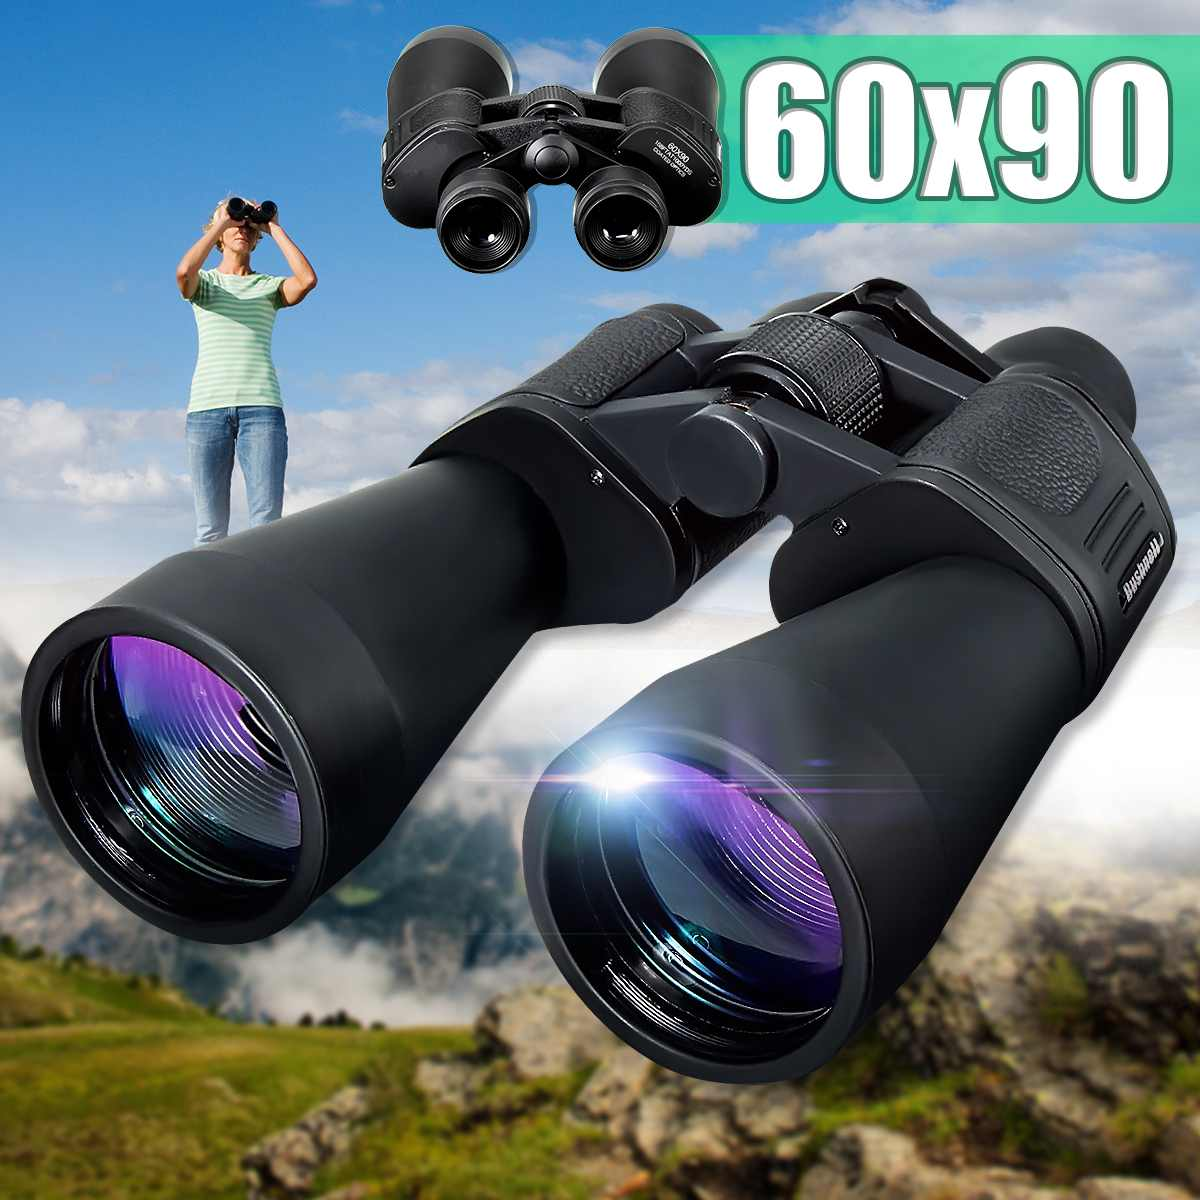 Zoom Telescope 60x90 Day&Night Vision Binoculars Professional Binoculars High Quality Eyepiece for Outdoor HuntingZoom Telescope 60x90 Day&Night Vision Binoculars Professional Binoculars High Quality Eyepiece for Outdoor Hunting